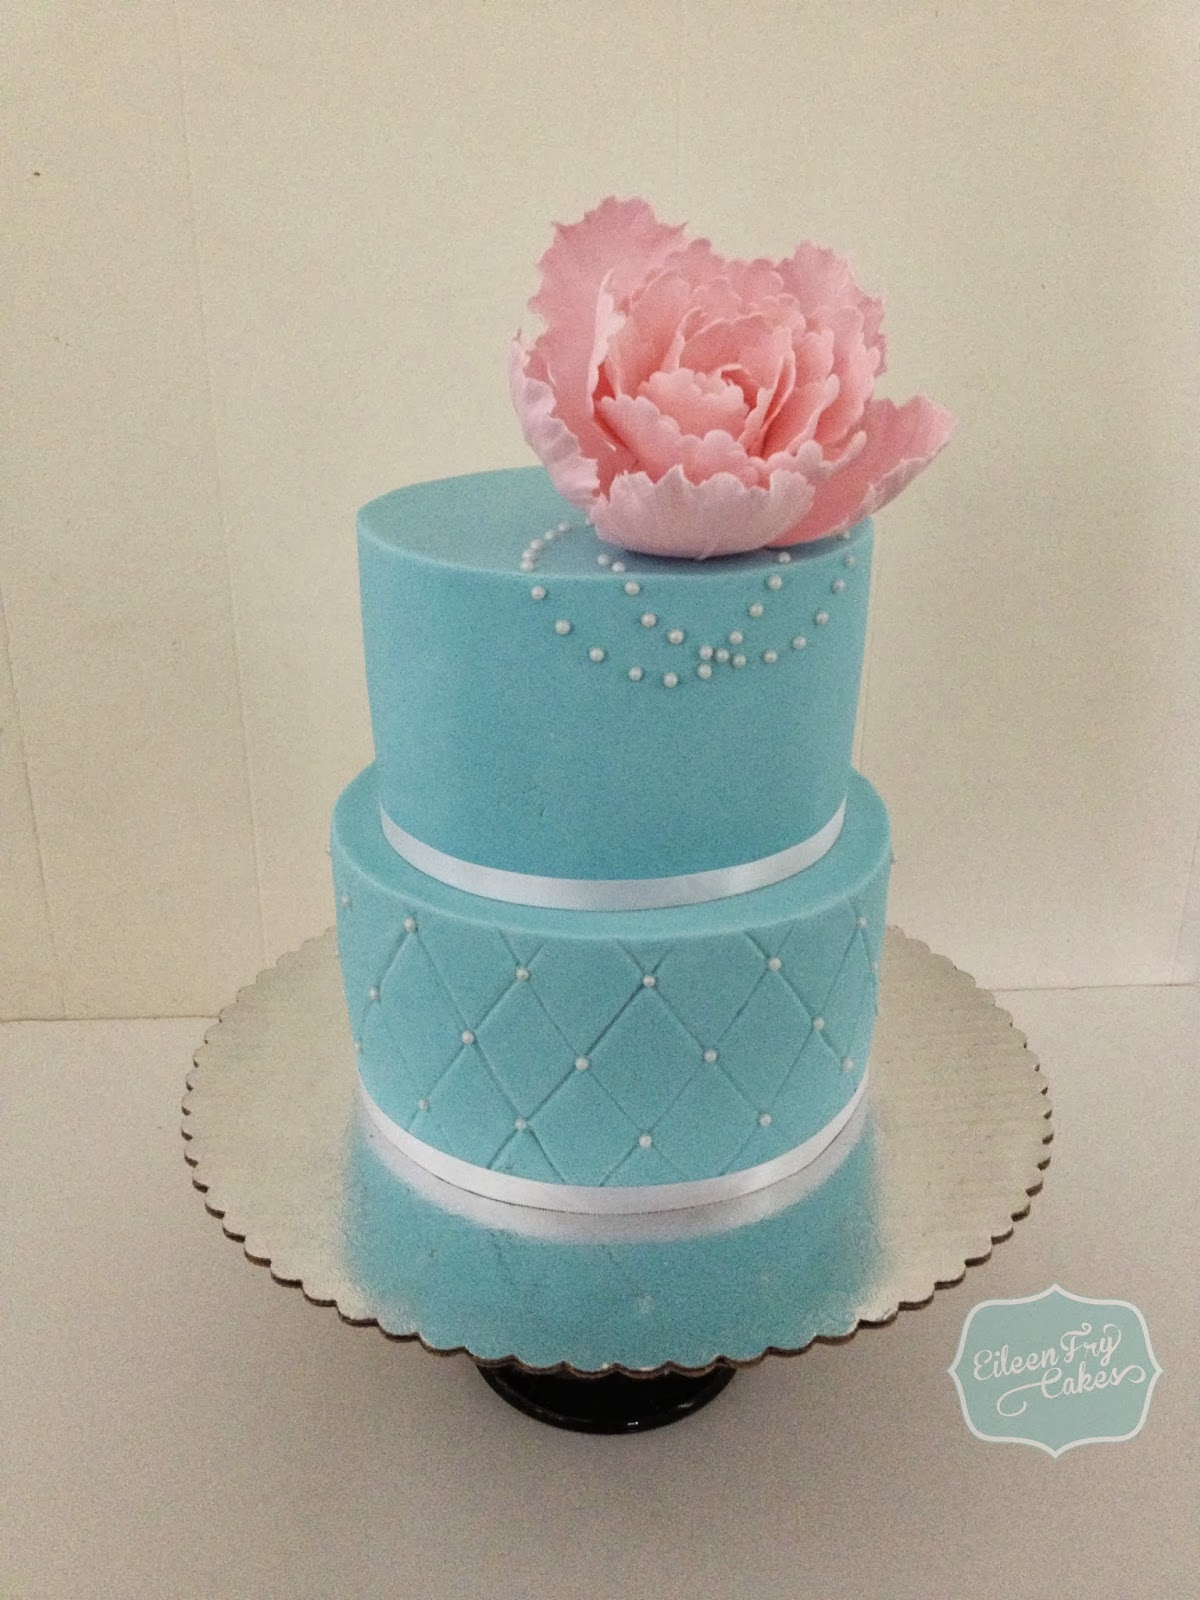 Eileen Fry Cakes Tiffany Blue Color Cake With A Pink Peony